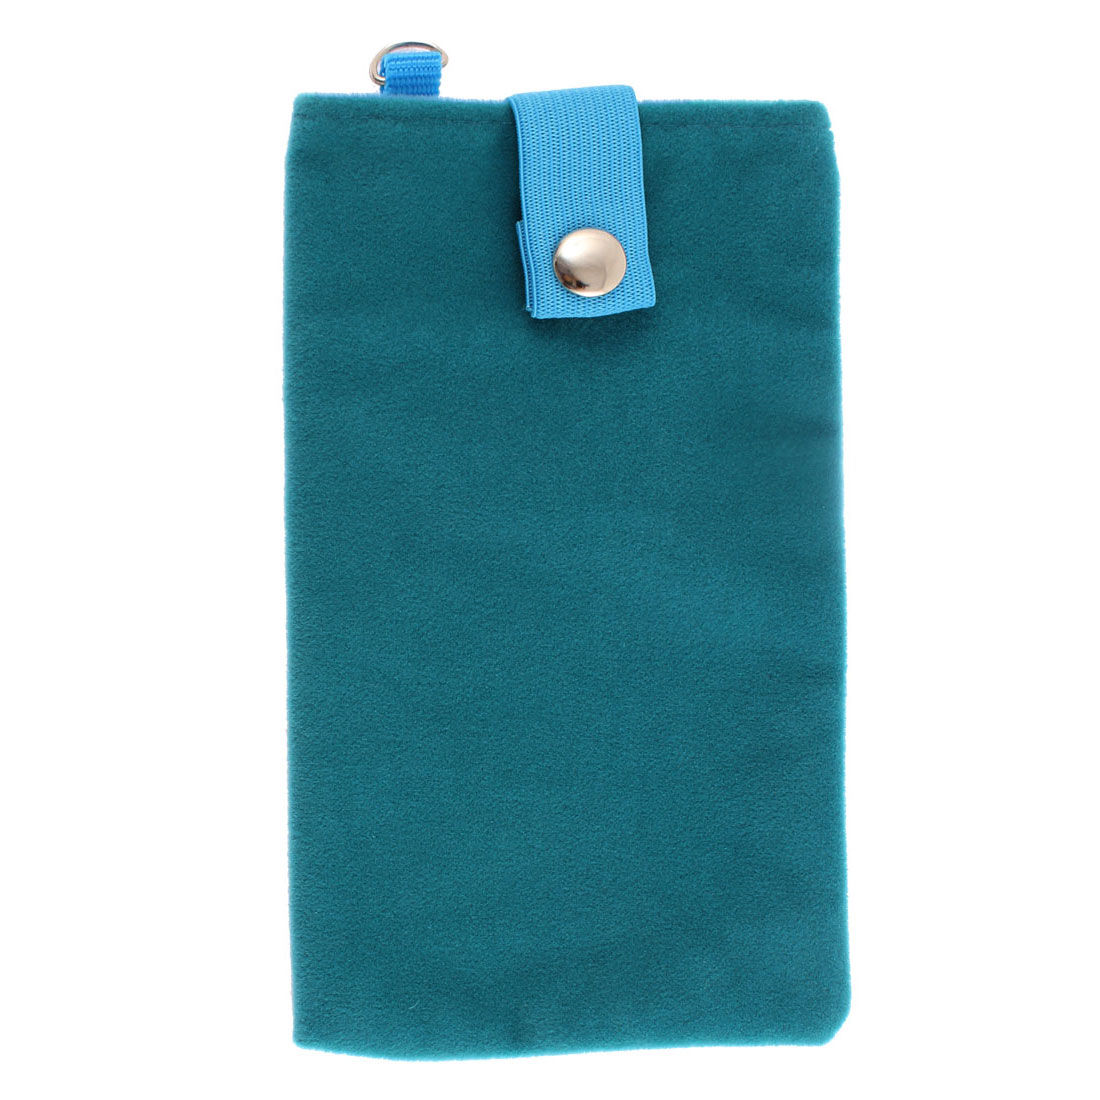 Velvet Magnetic Clasp Button Cell Phone Pouch Sleeve Bag Teal Blue 16x9.5cm